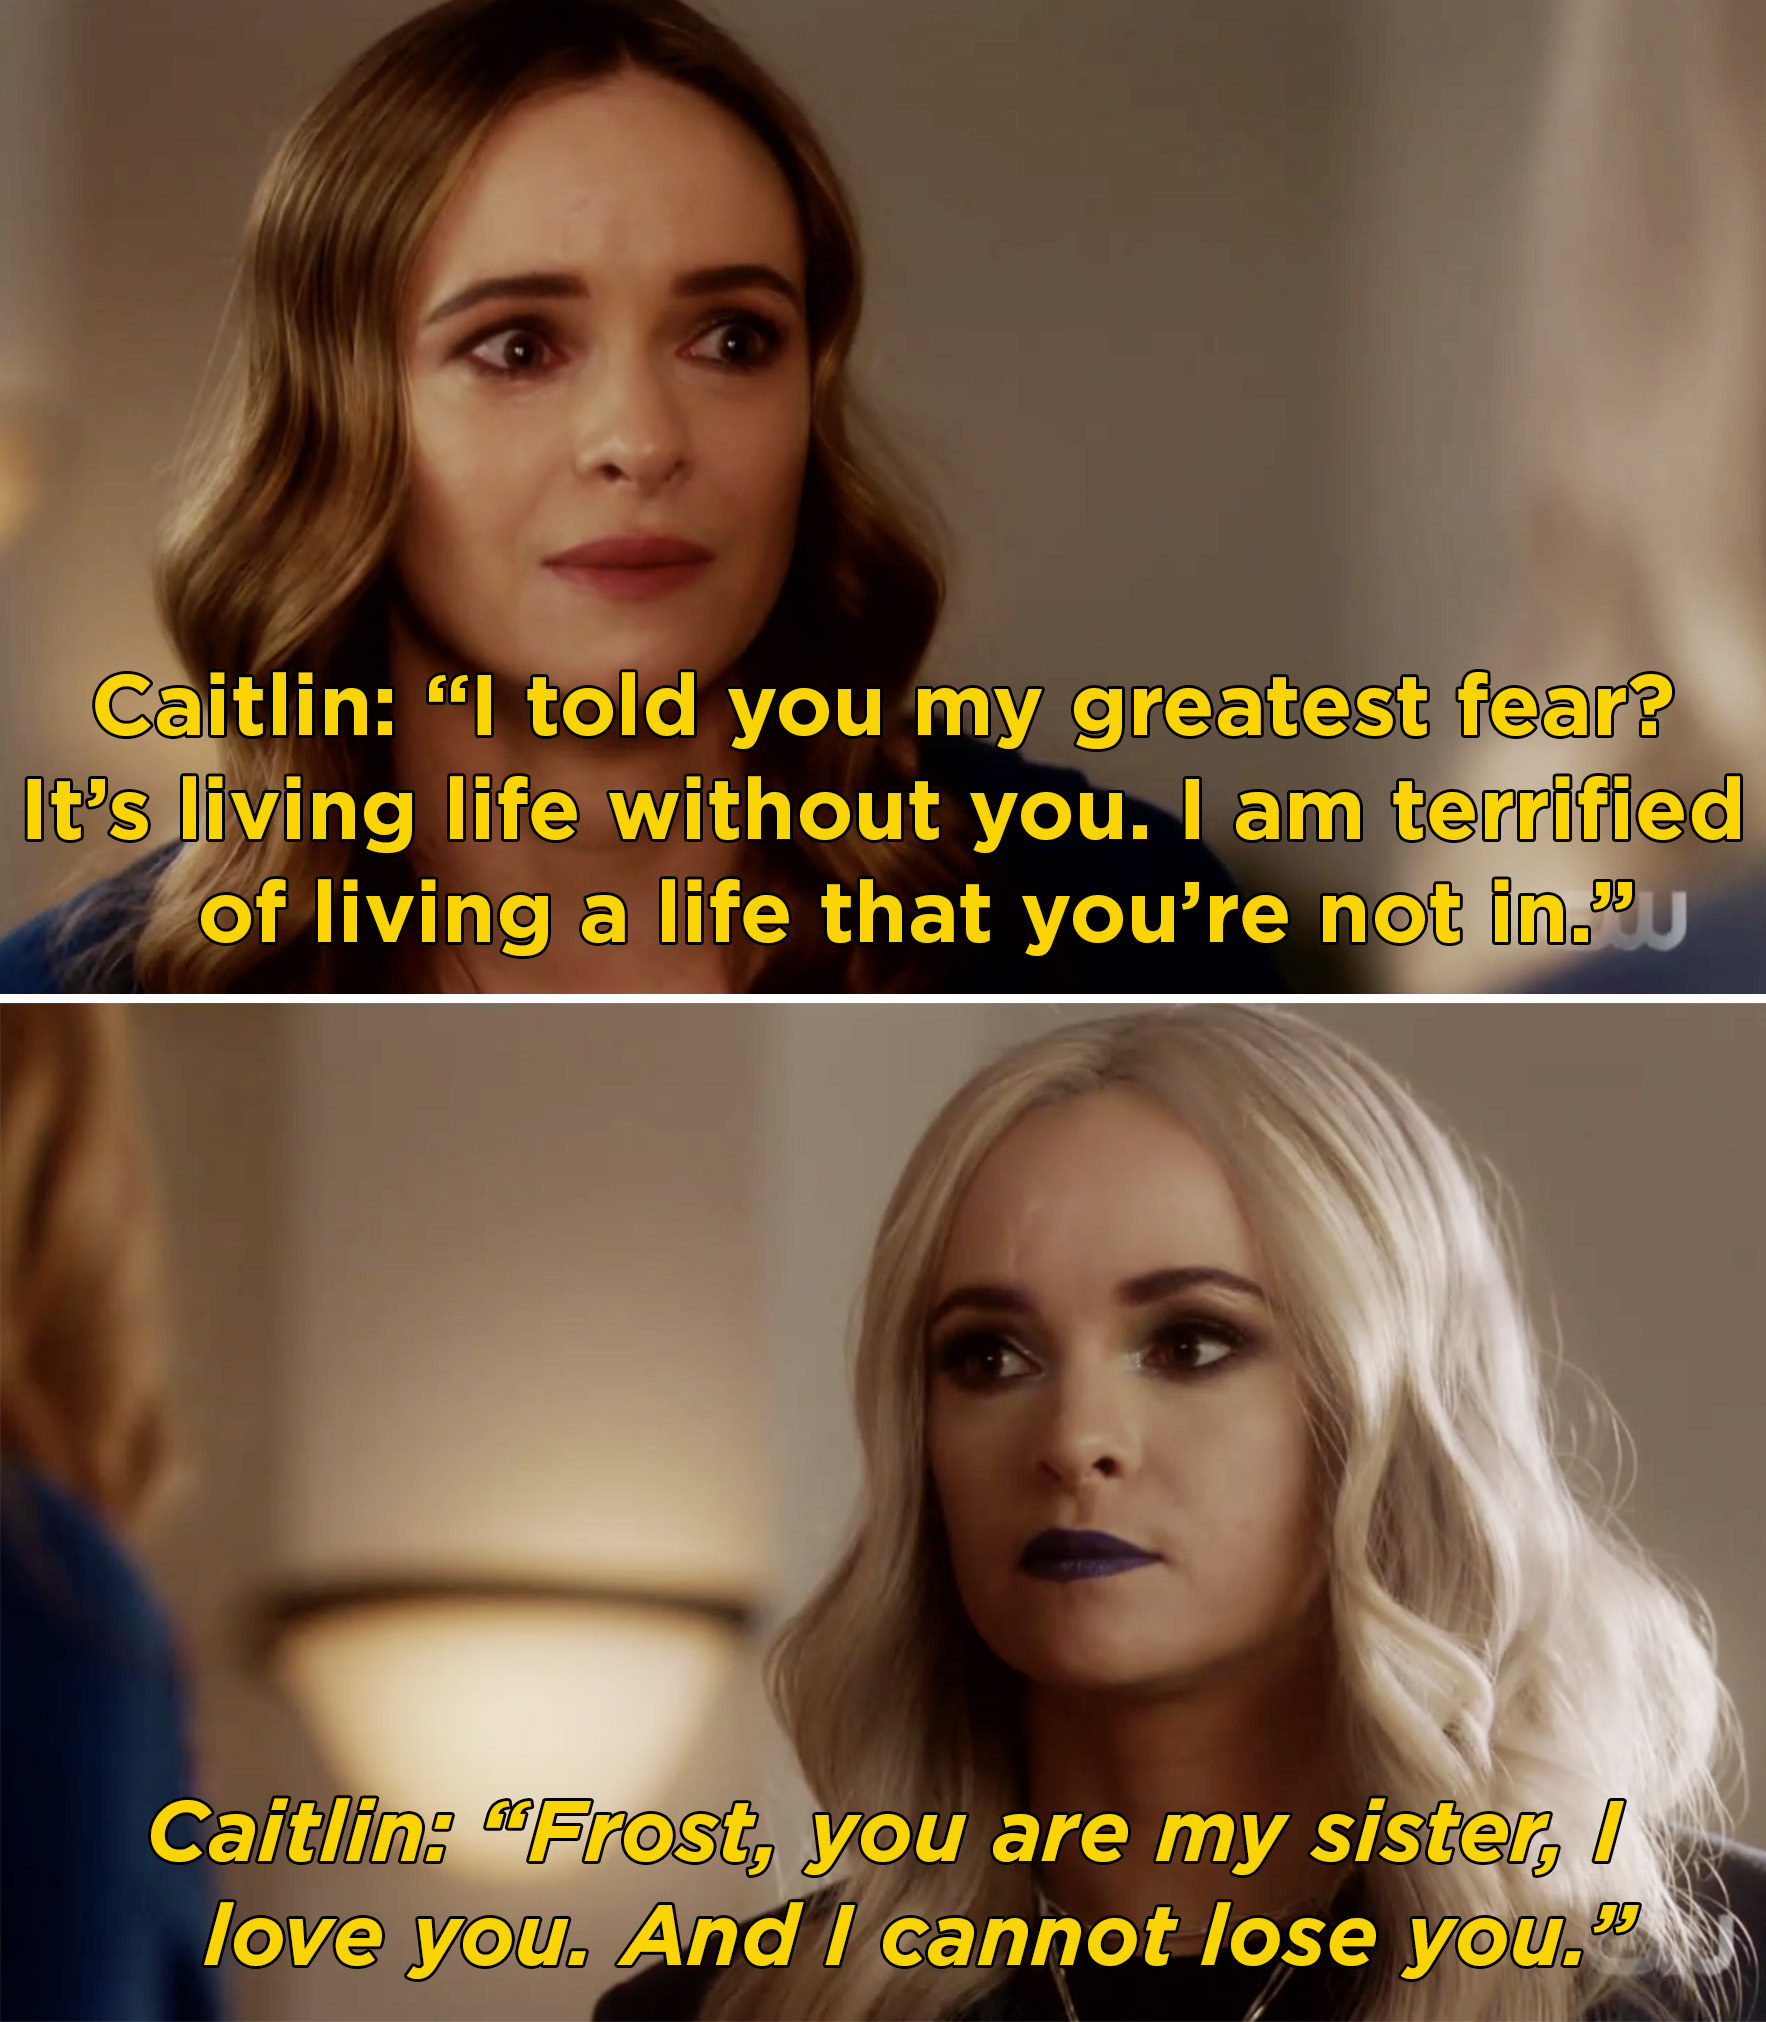 Caitlin telling Frost that she's her sister and her worst fear is losing her